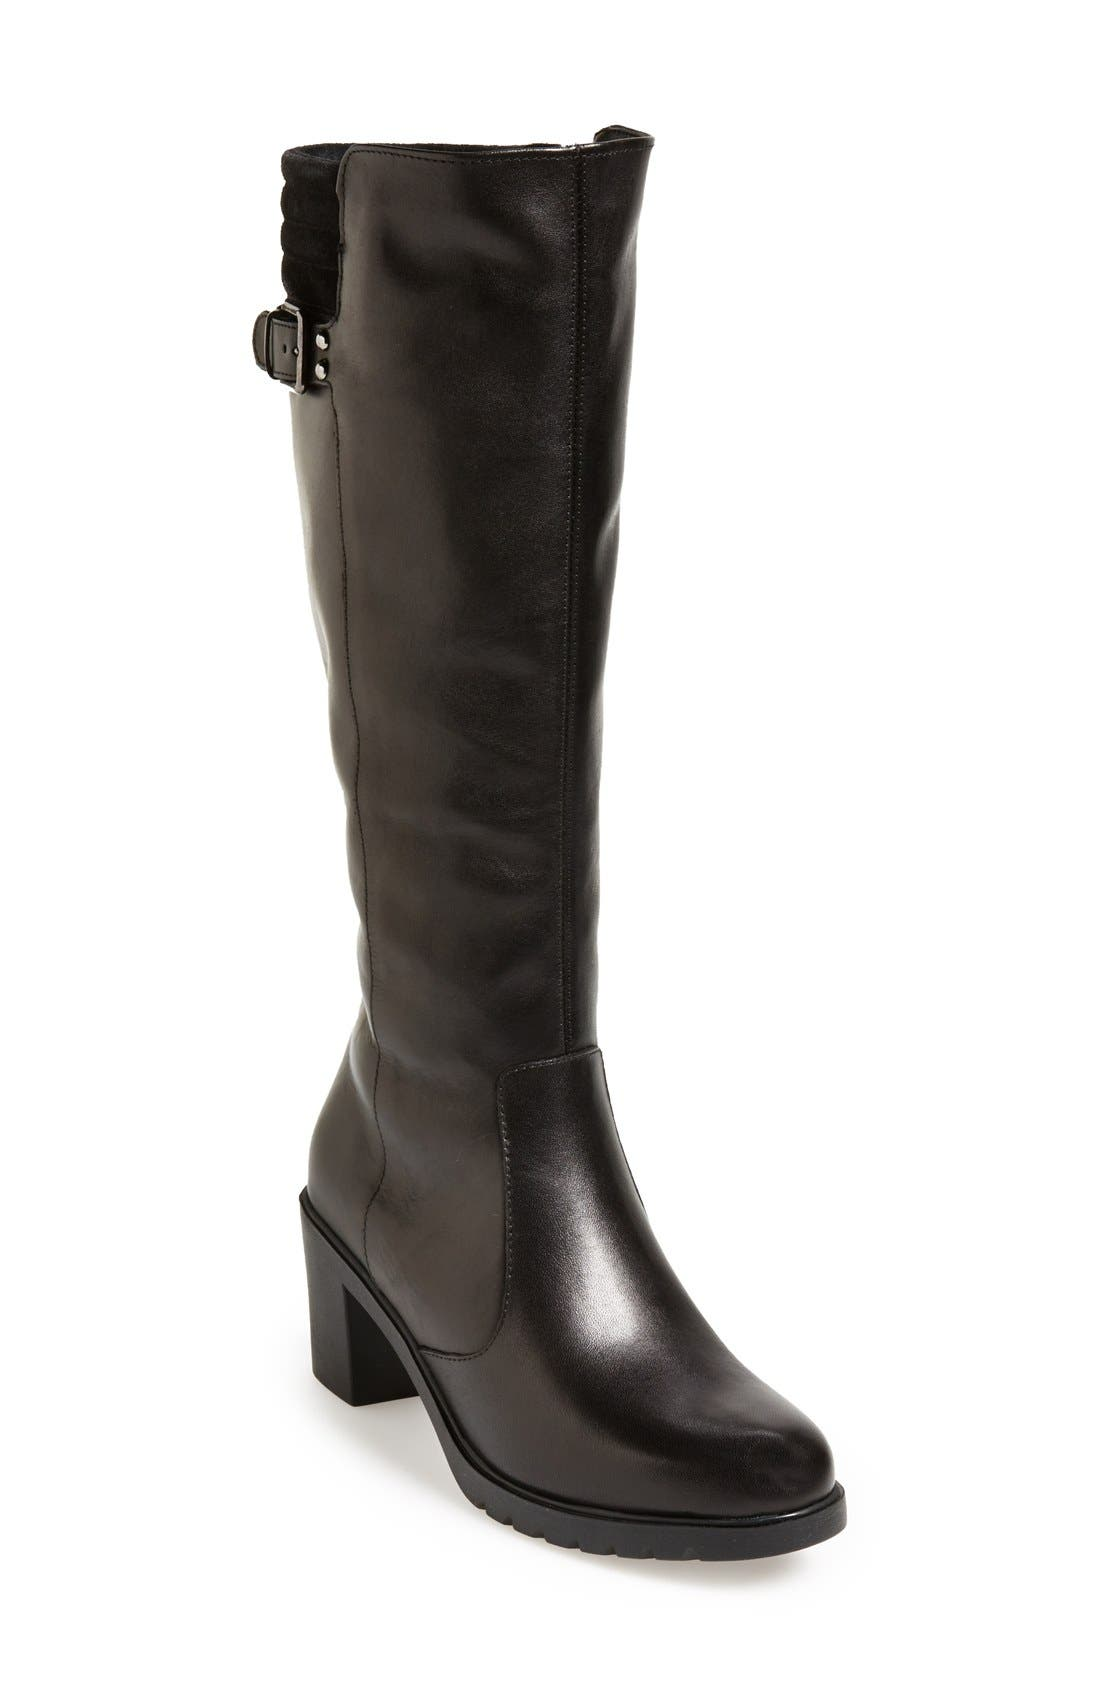 Alternate Image 1 Selected - The FLEXX 'One Trick Pony' Leather Tall Boot (Women)